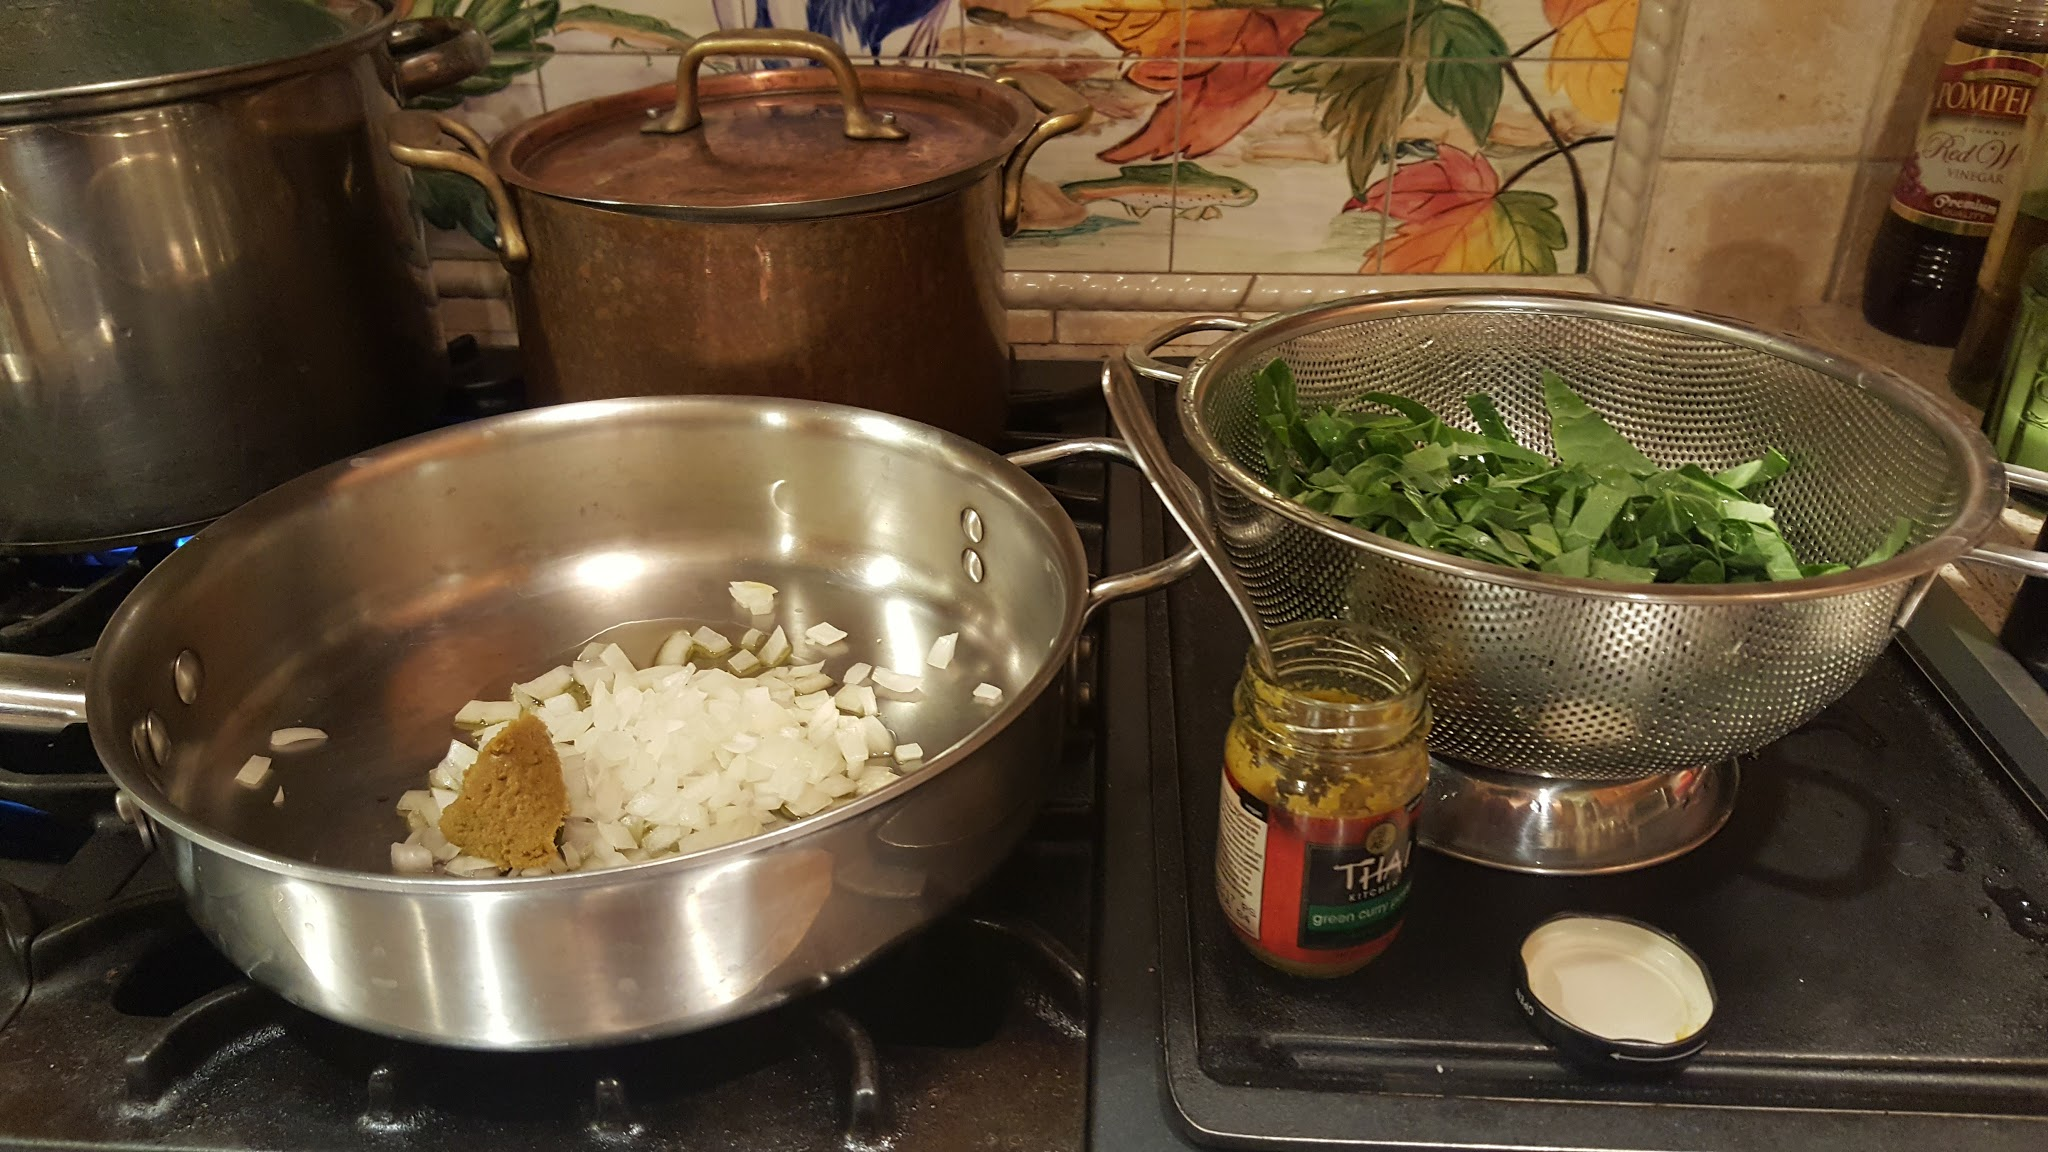 Sauté Greens in Olive Oil, Onions & 1 TBSP Curry Paste